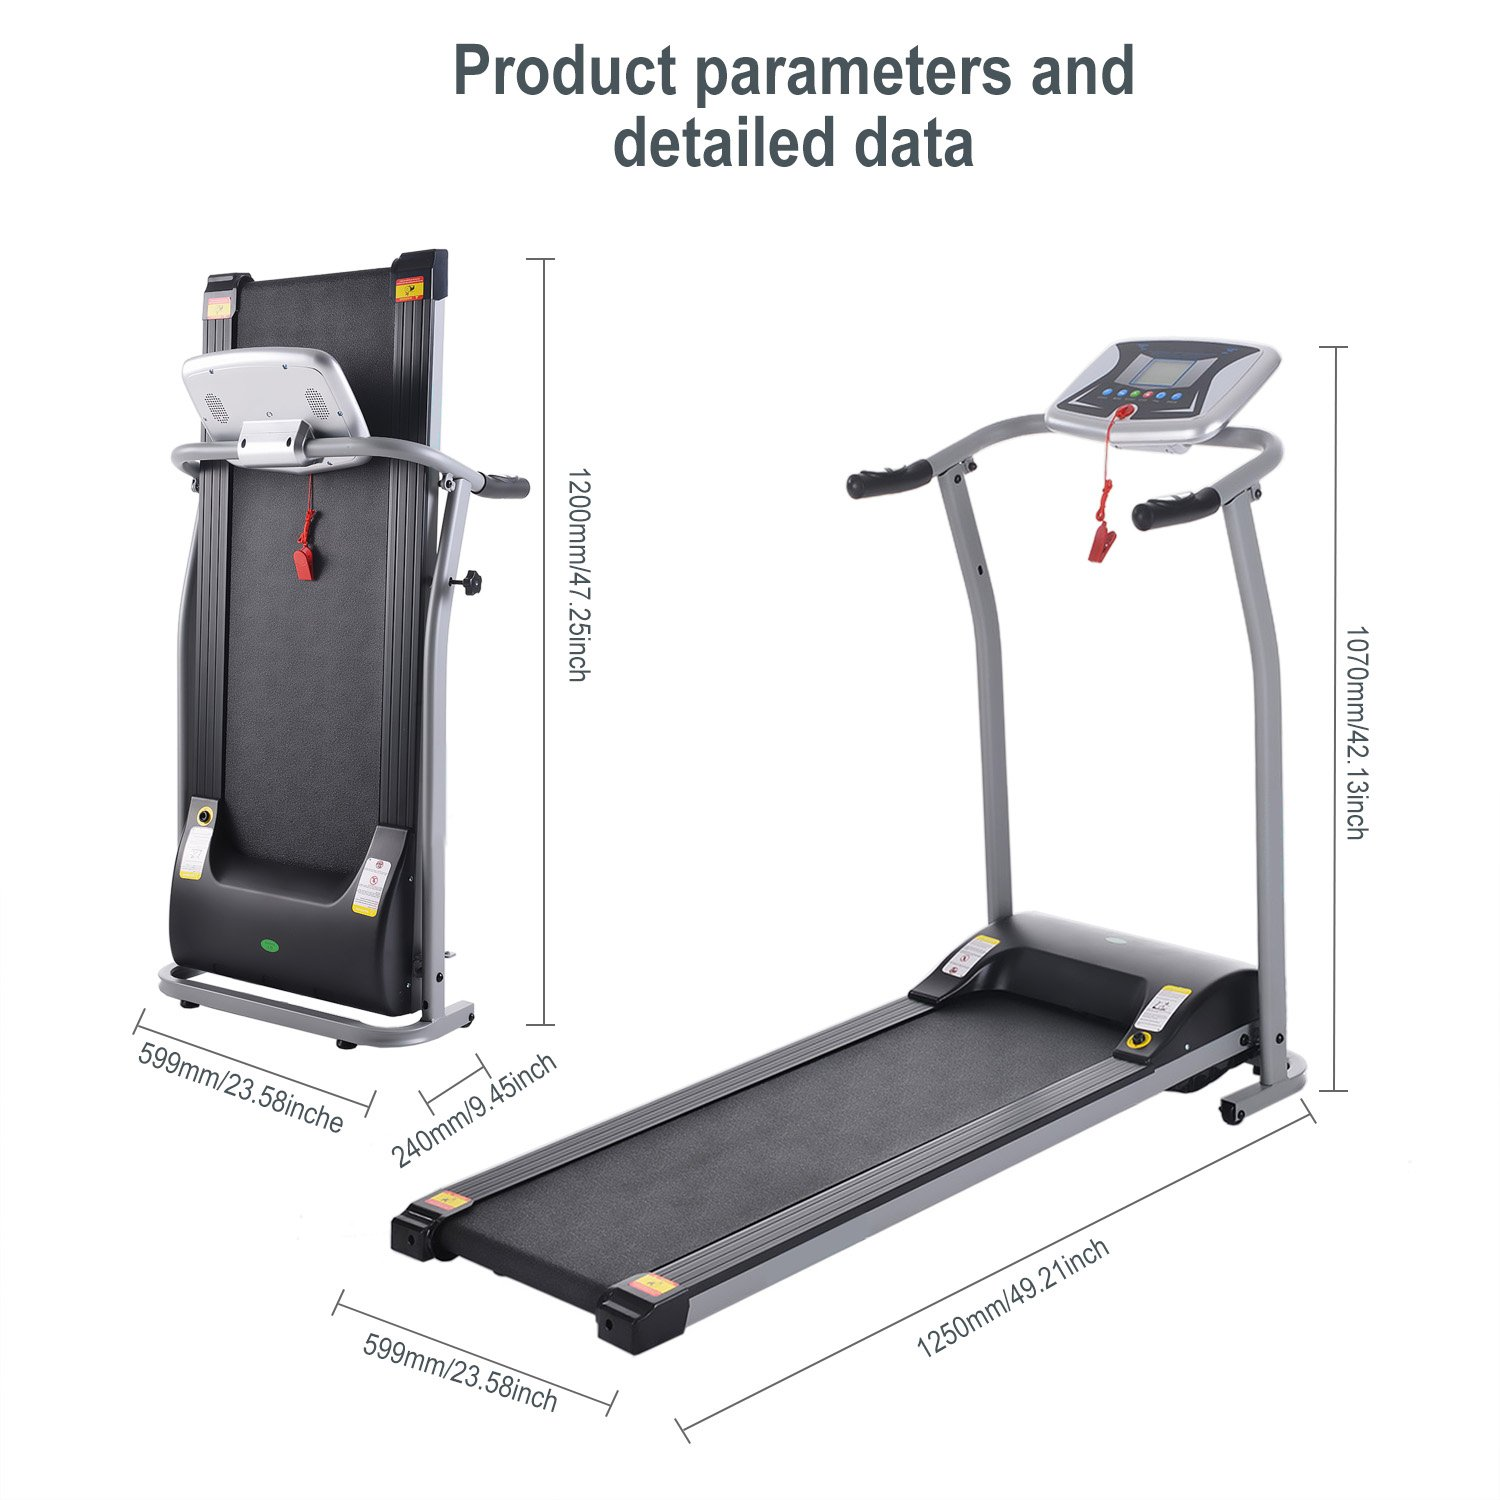 Folding Electric Treadmill Running Machine Power Motorized for Home Gym Exercise Walking Fitness (1.5 HP - Silver - Not Incline) by ncient (Image #5)